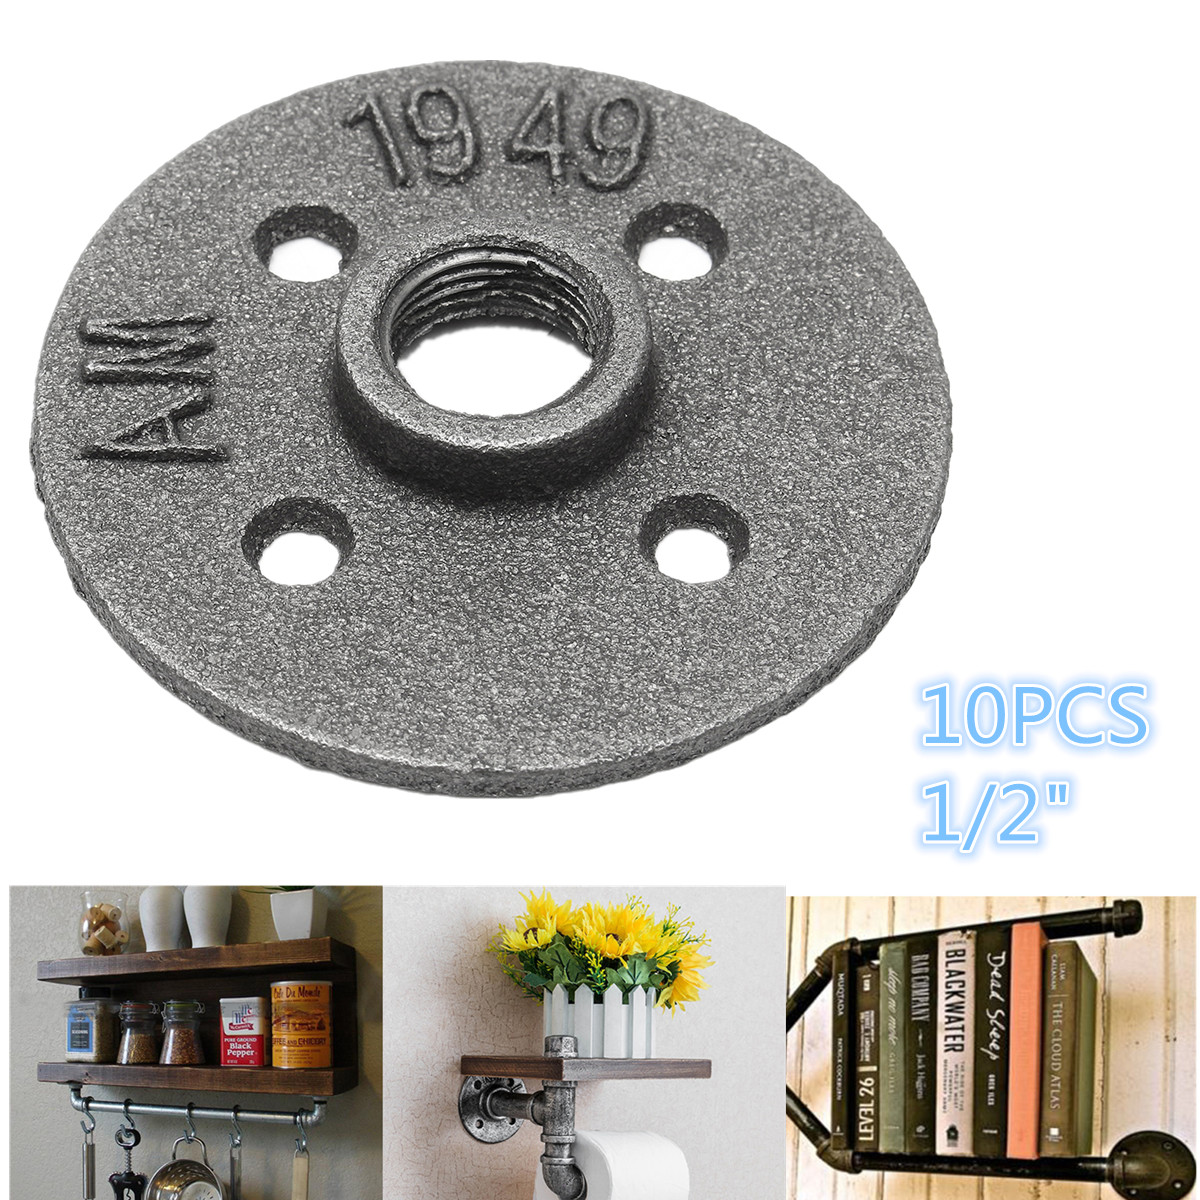 10pcs/lot For 1/2 Pipe DN20 Iron Floor Flange Seat Classic Casting Iron Flange High Quality Pipe Fittings Wall Mount брюки valentino rossi брюки